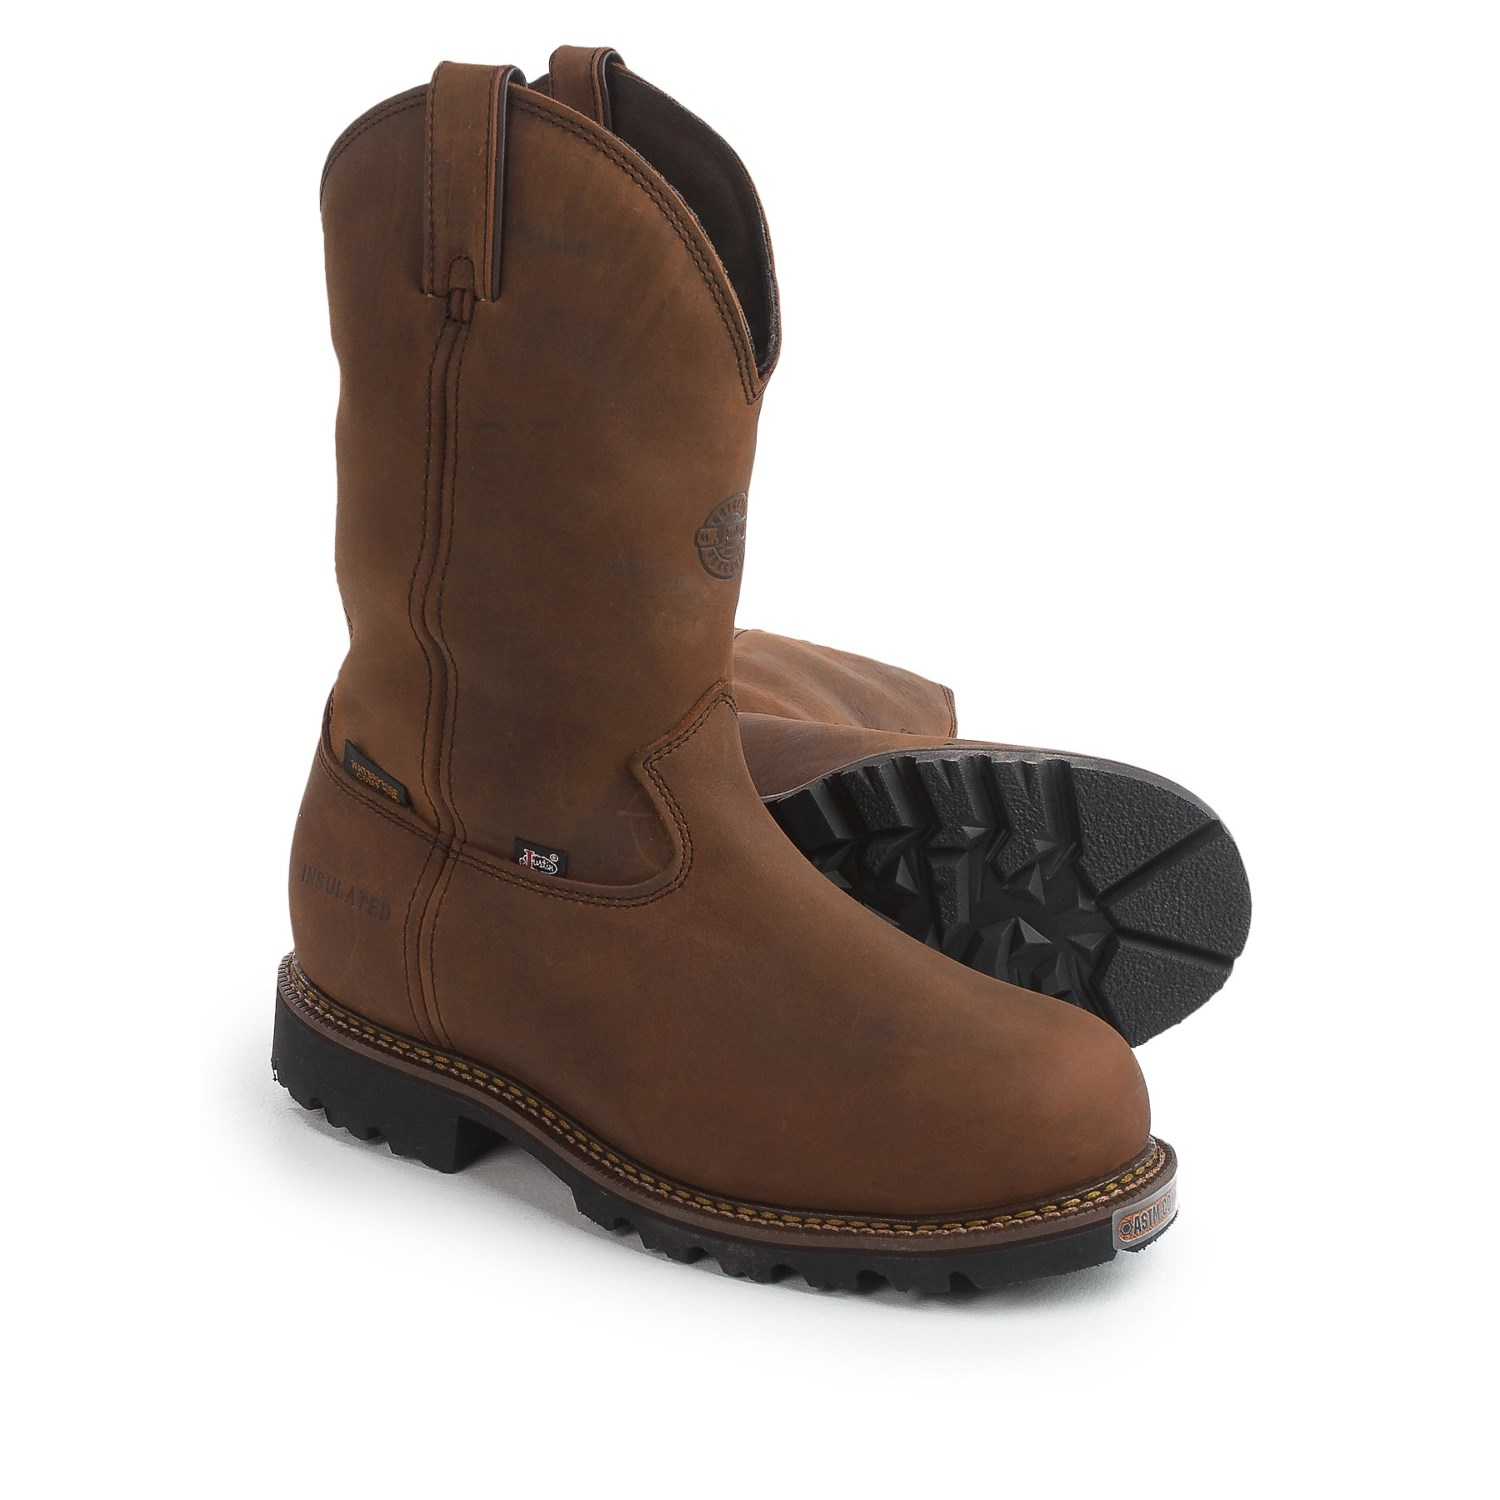 Justin leather work gloves - Justin Boots 11 Stag Gaucho Work Boots Insulated Composite Toe Leather